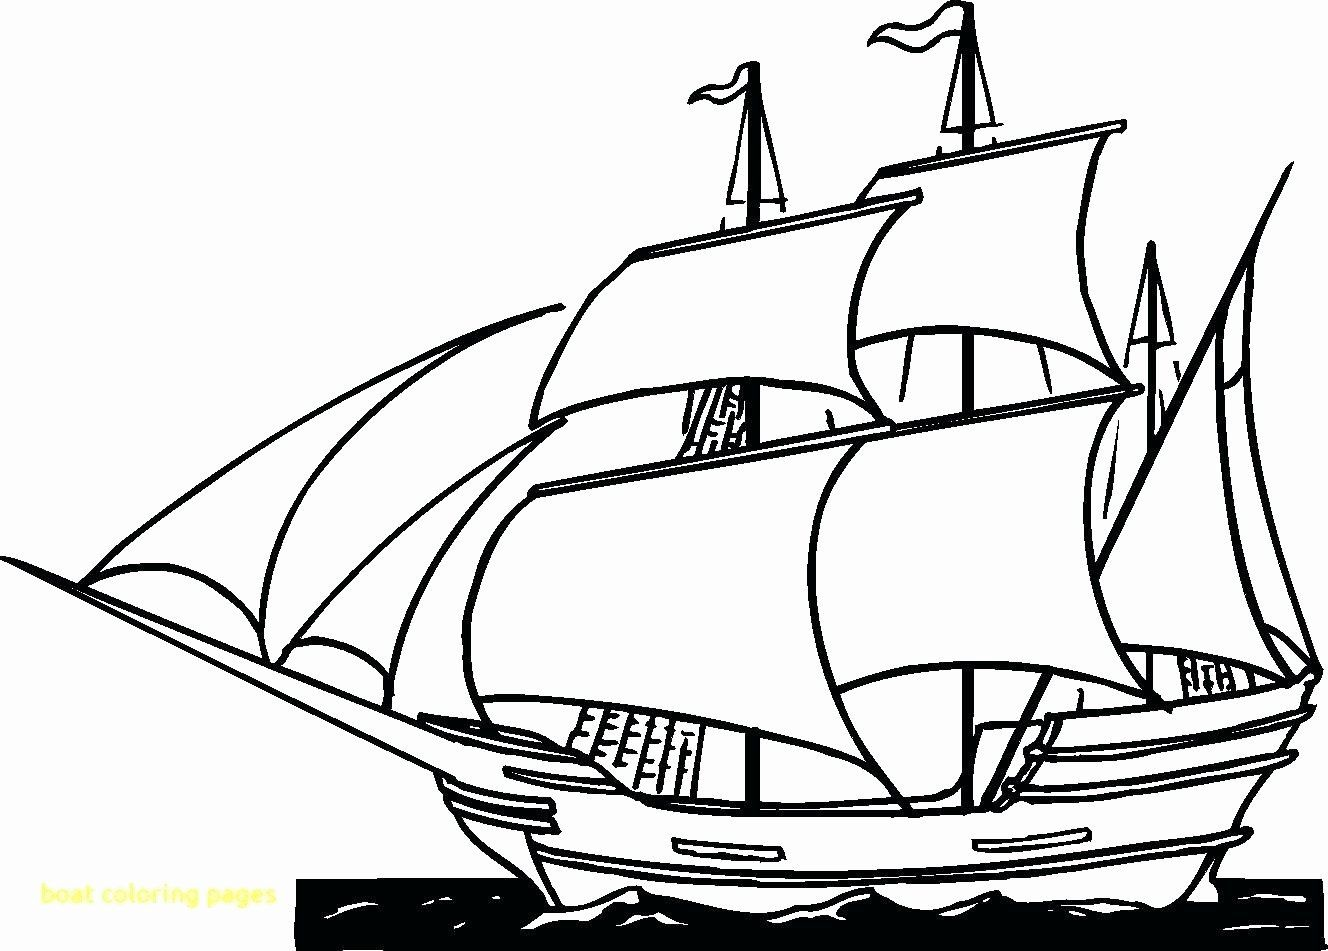 Sailing Boat Coloring Pages Lovely Coloring Pages Of Sailboats Lagunapaper Potlood Schetsen Kleurplaten Schetsen